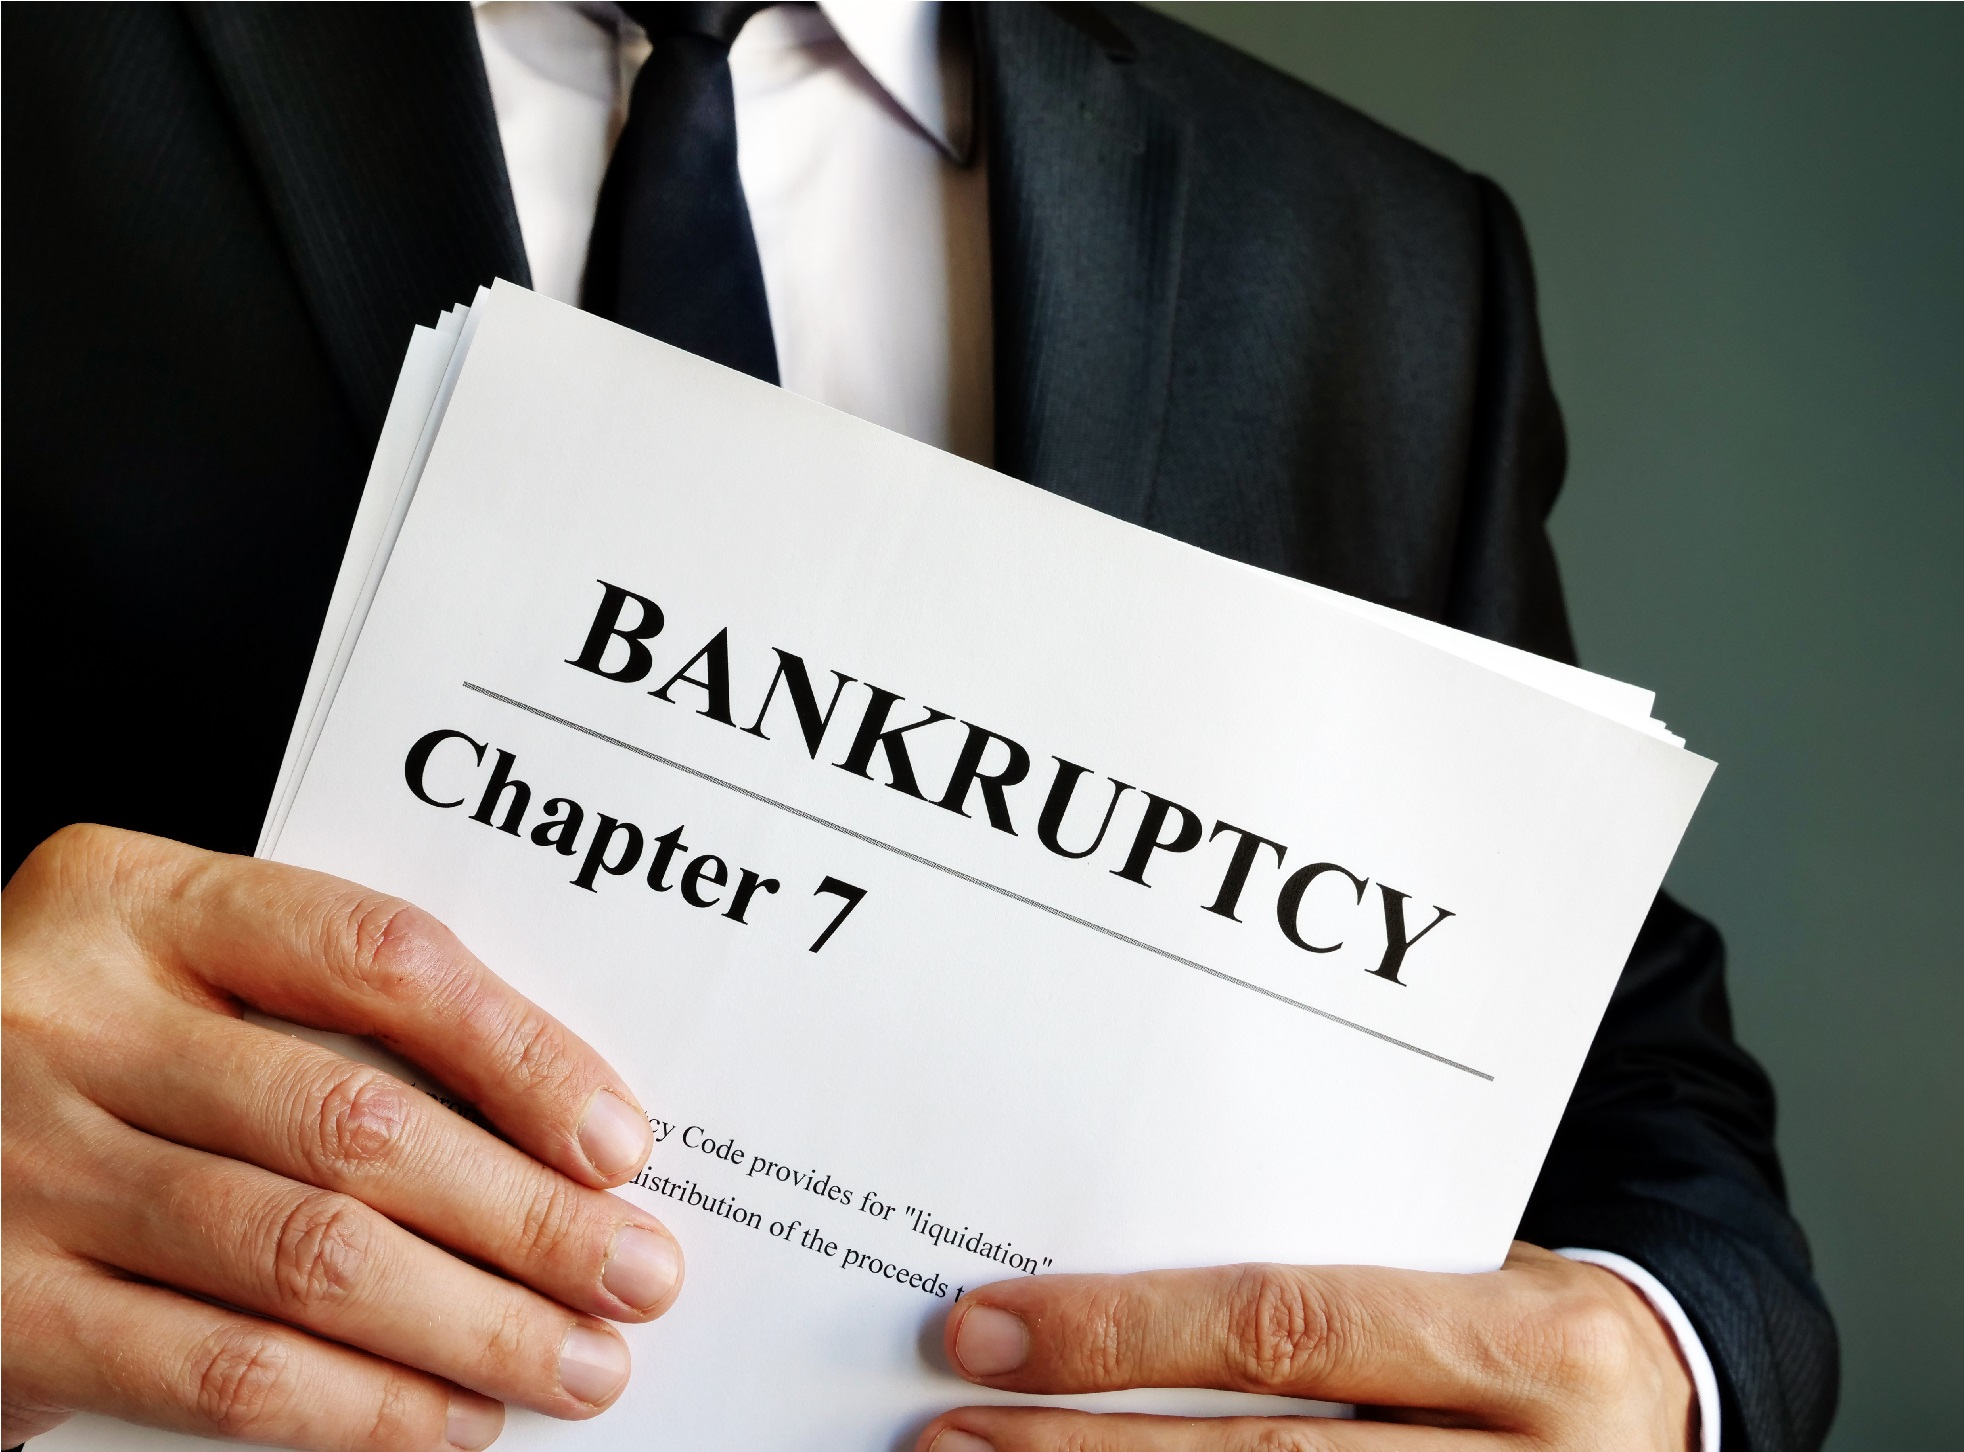 What Chapter 7 Bankruptcy Means for Those Who Declare It